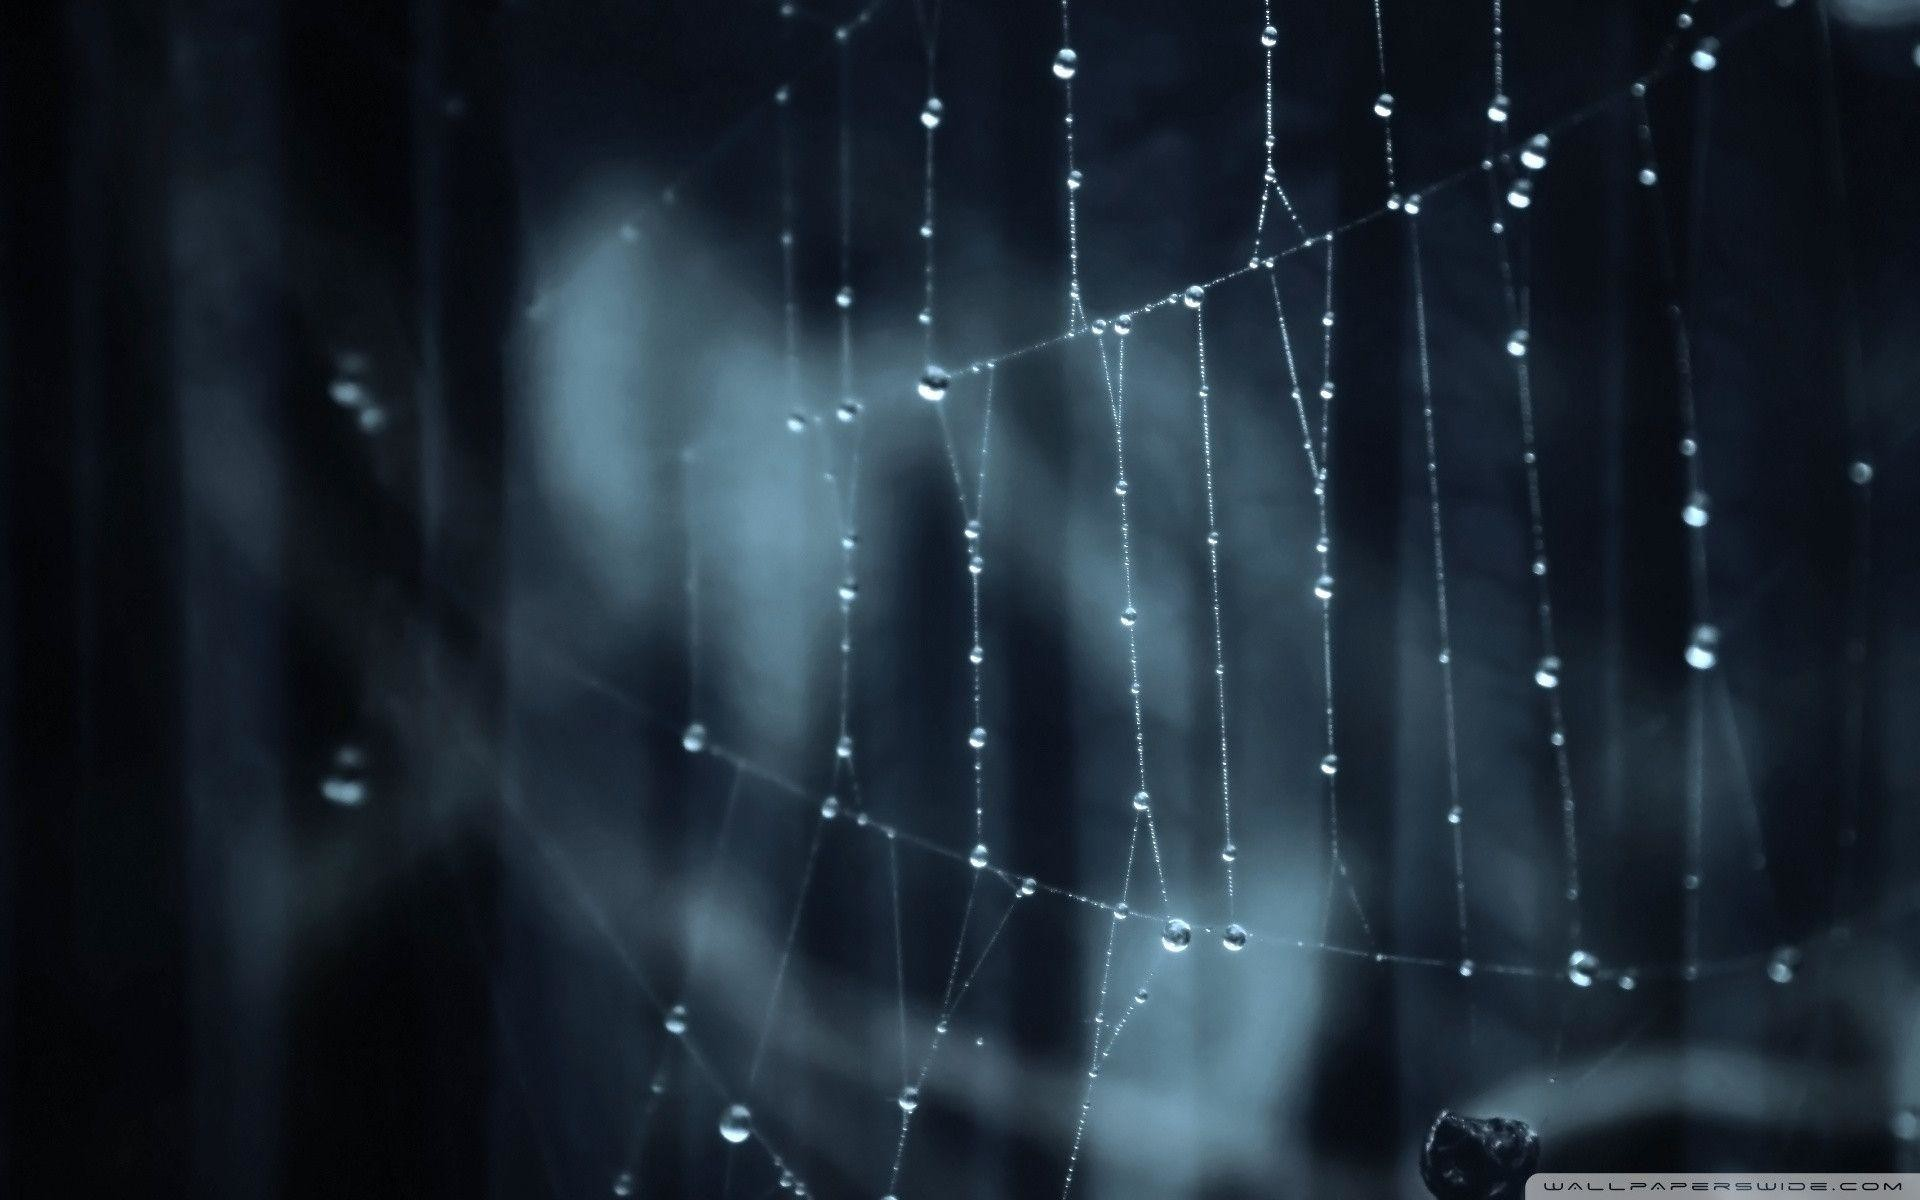 Spider Web Windows 8.1 Theme and Wallpapers   Windows 8.1 Themes .